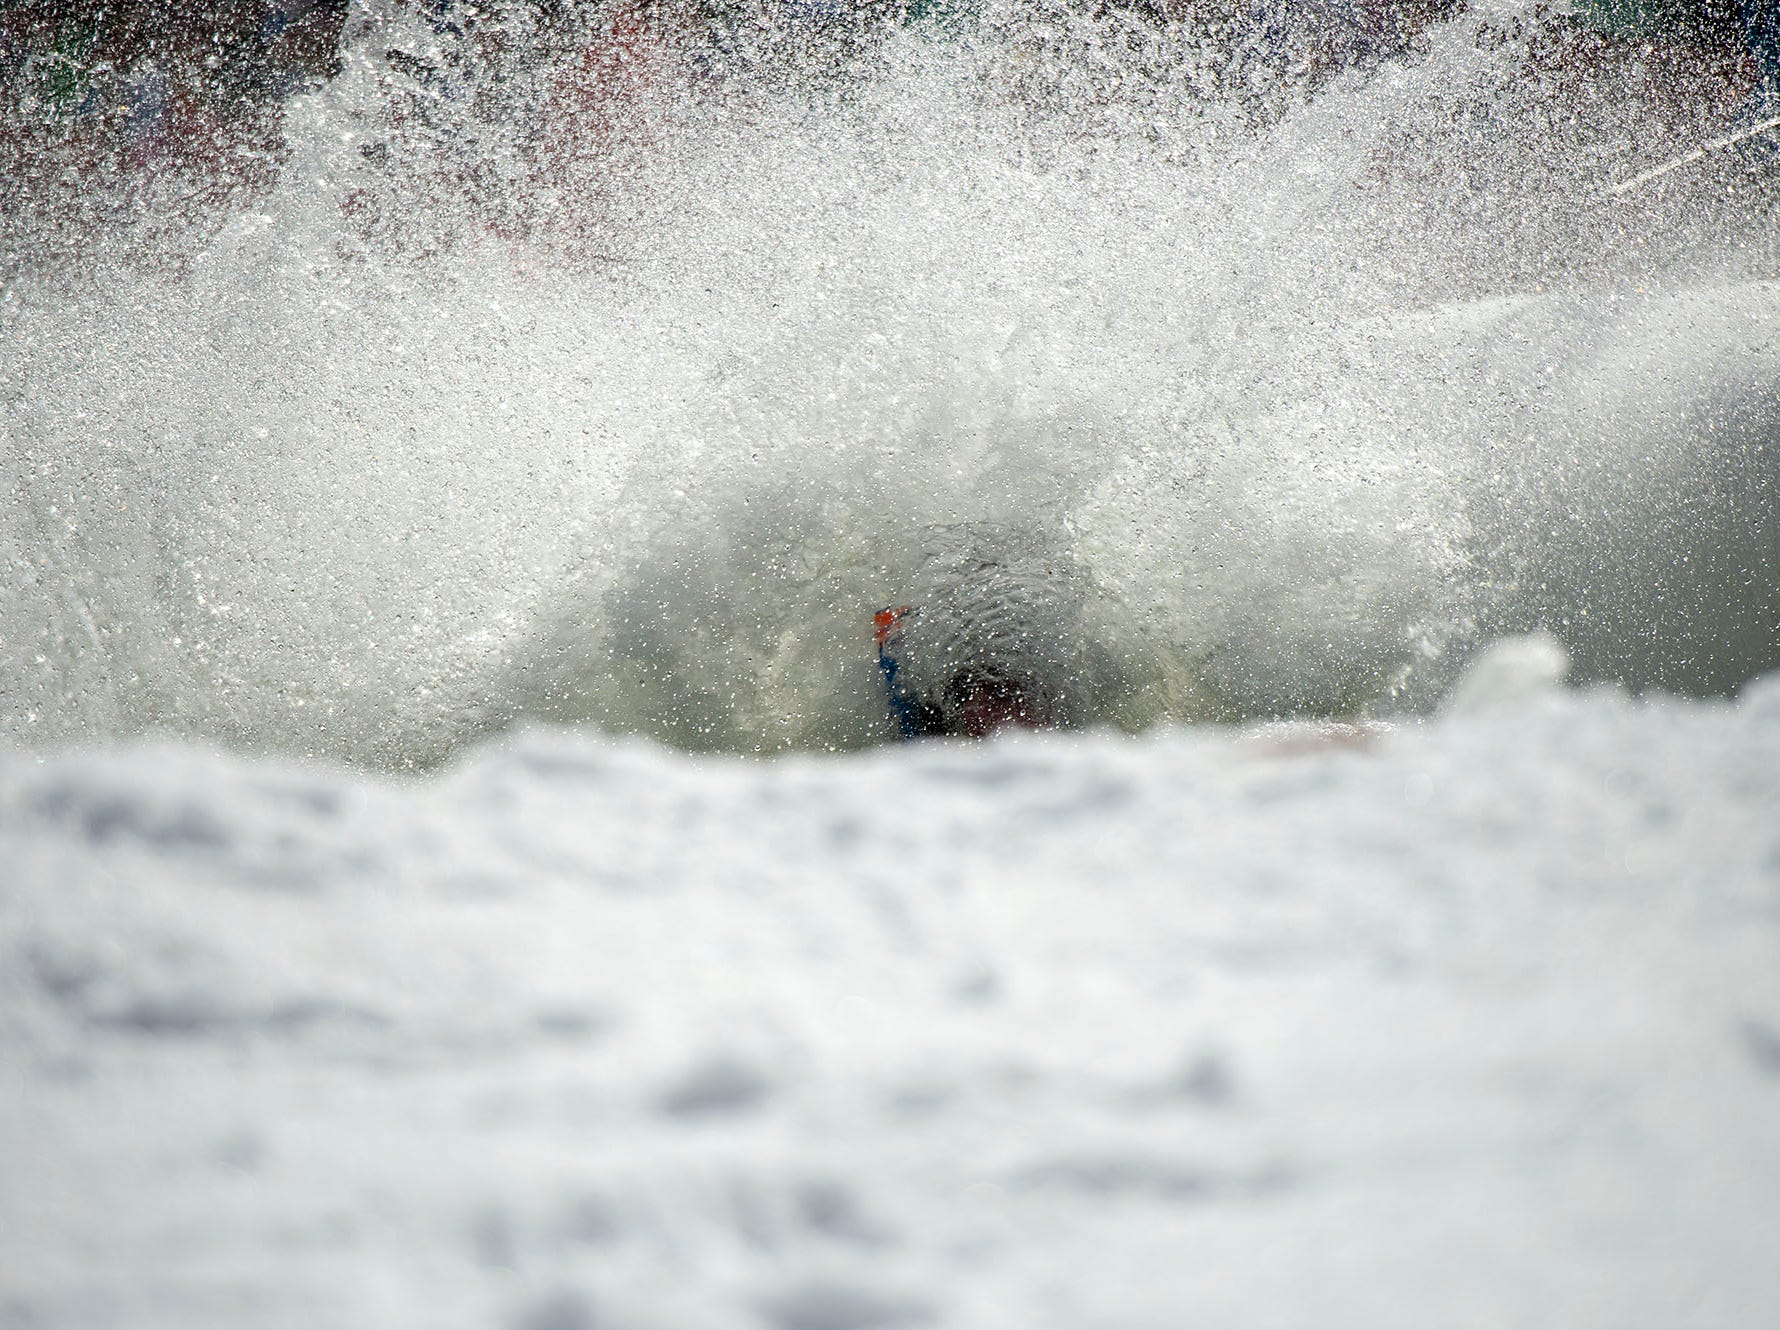 All that can be seen of this participant is his snorkel at the end of his pond skimming run at Roundtop Mountain Resort on Saturday, March 16, 2019.